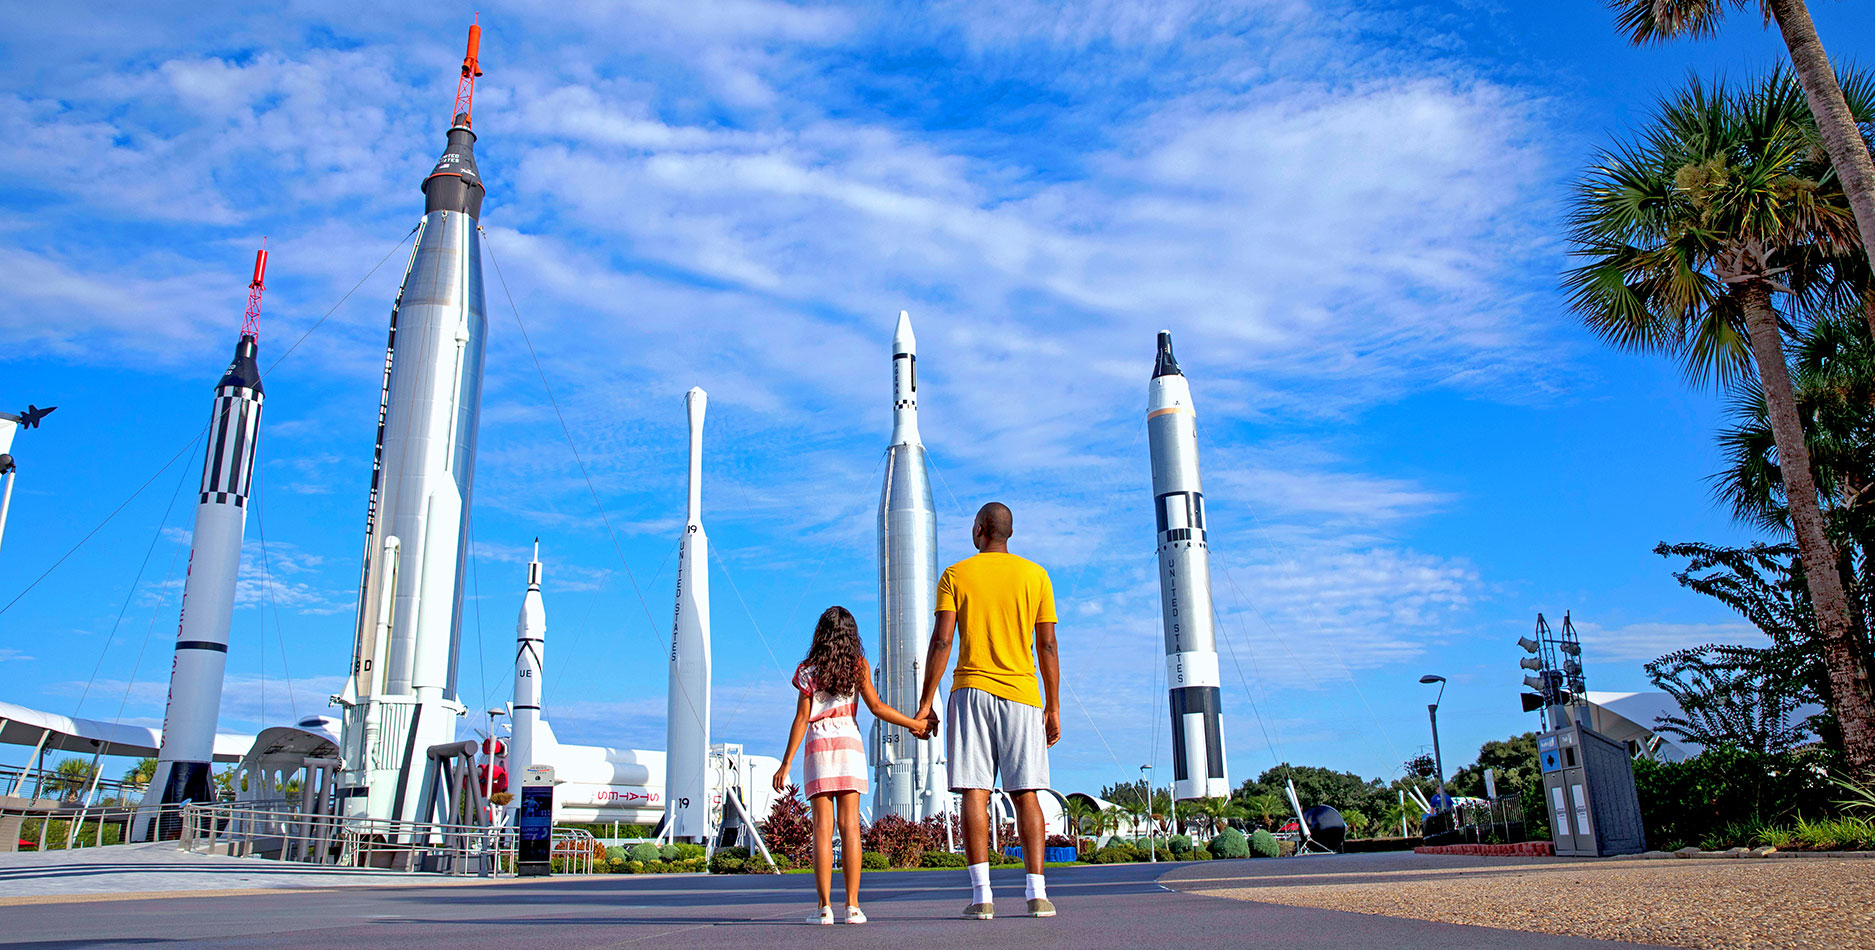 Father and daughter look up at the Rocket Garden at the Kennedy Space Center Visitor Complex where Rockets launch and inspiration begins.